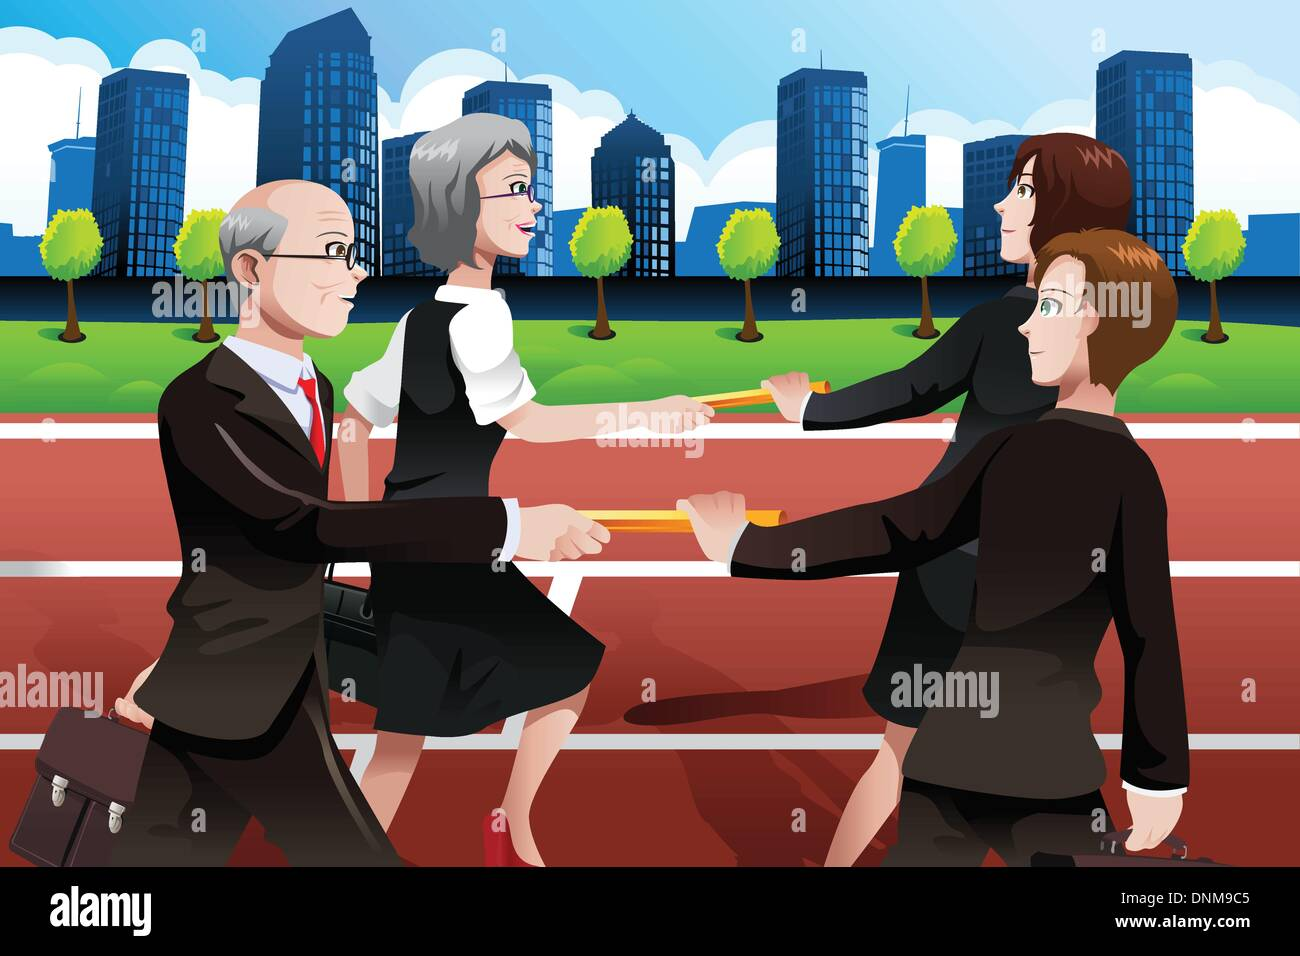 A vector illustration of older business people passing batons to the younger generation - Stock Vector